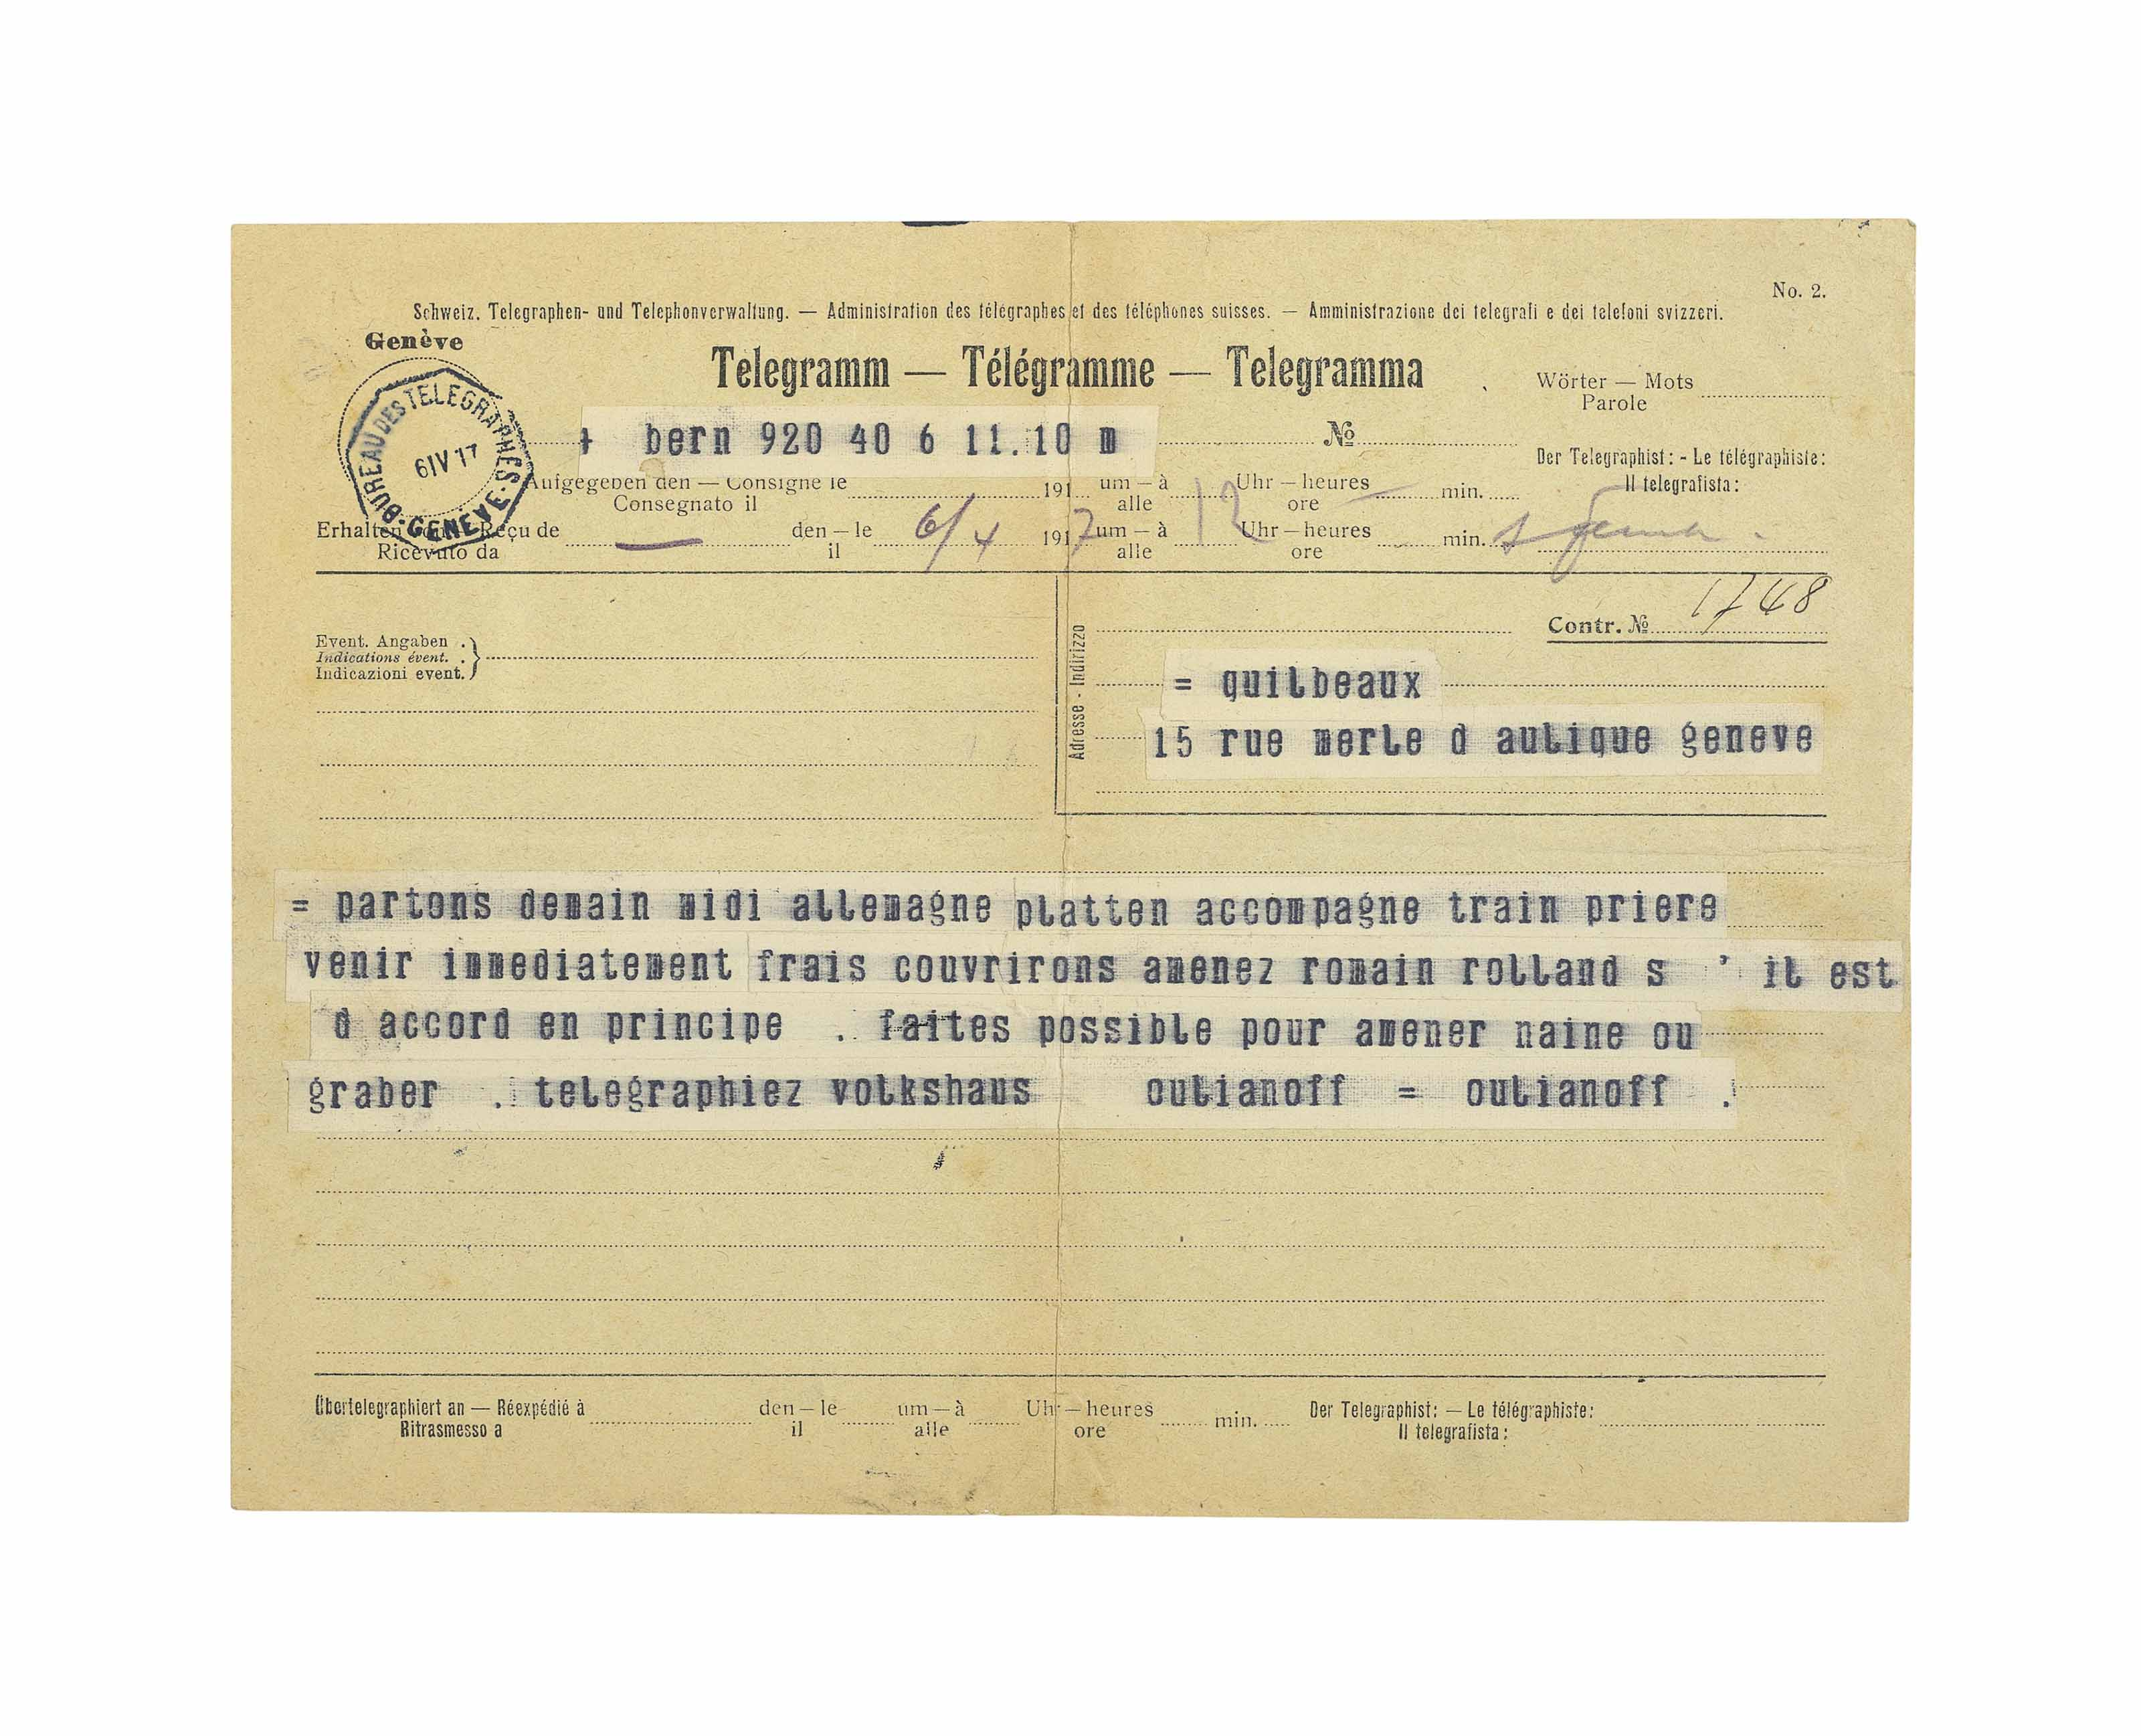 LENIN, Vladimir Ilyich (1870-1924). Telegram addressed to [the French socialist Henri] Guilbeaux in Geneva, n.p. Bern, 11.10 a.m., 6 April 1917, in French, ANNOUNCING HIS DEPARTURE FOR RUSSIA AT THE OUTSET OF THE RUSSIAN REVOLUTION, sent under Lenin's birth name, Ulyanov, 'partons demain midi allemagne platten accompagne train priere venir immediatement frais couvrirons amenez romain rolland s'il est d'accord en principe. faites possible pour amener naine ou graber. telegraphiez volkshaus oulianoff', the recipient's copy, the teleprinted text pasted onto a printed form of the Swiss telegraph and telephone service, the date and time filled out in manuscript, date stamp of the Geneva telegraph bureau, one page, oblong 8vo (180 x 232mm).